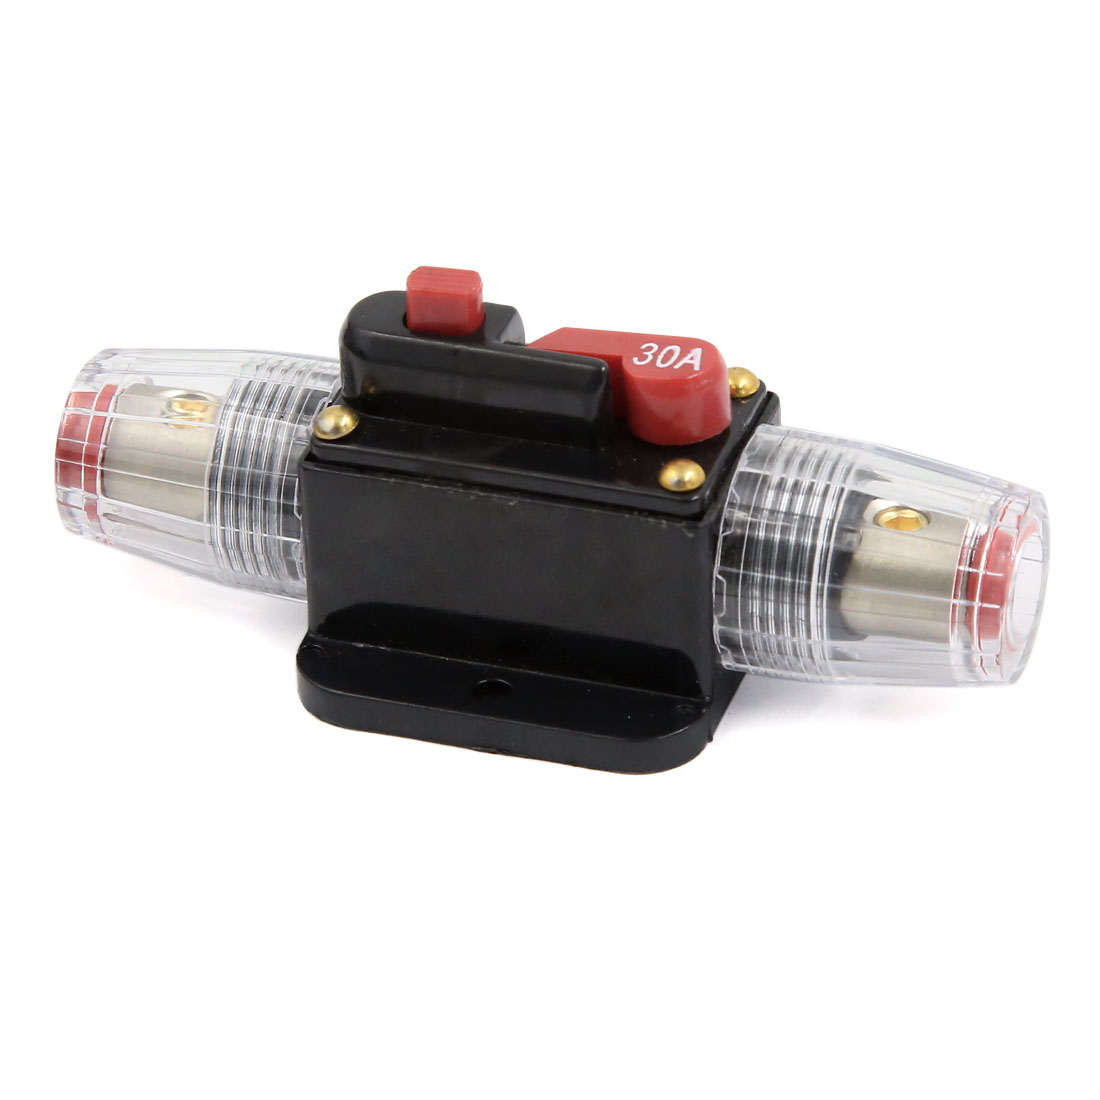 30A Amplifier Fuse Holder Clear Casing for Car Truck